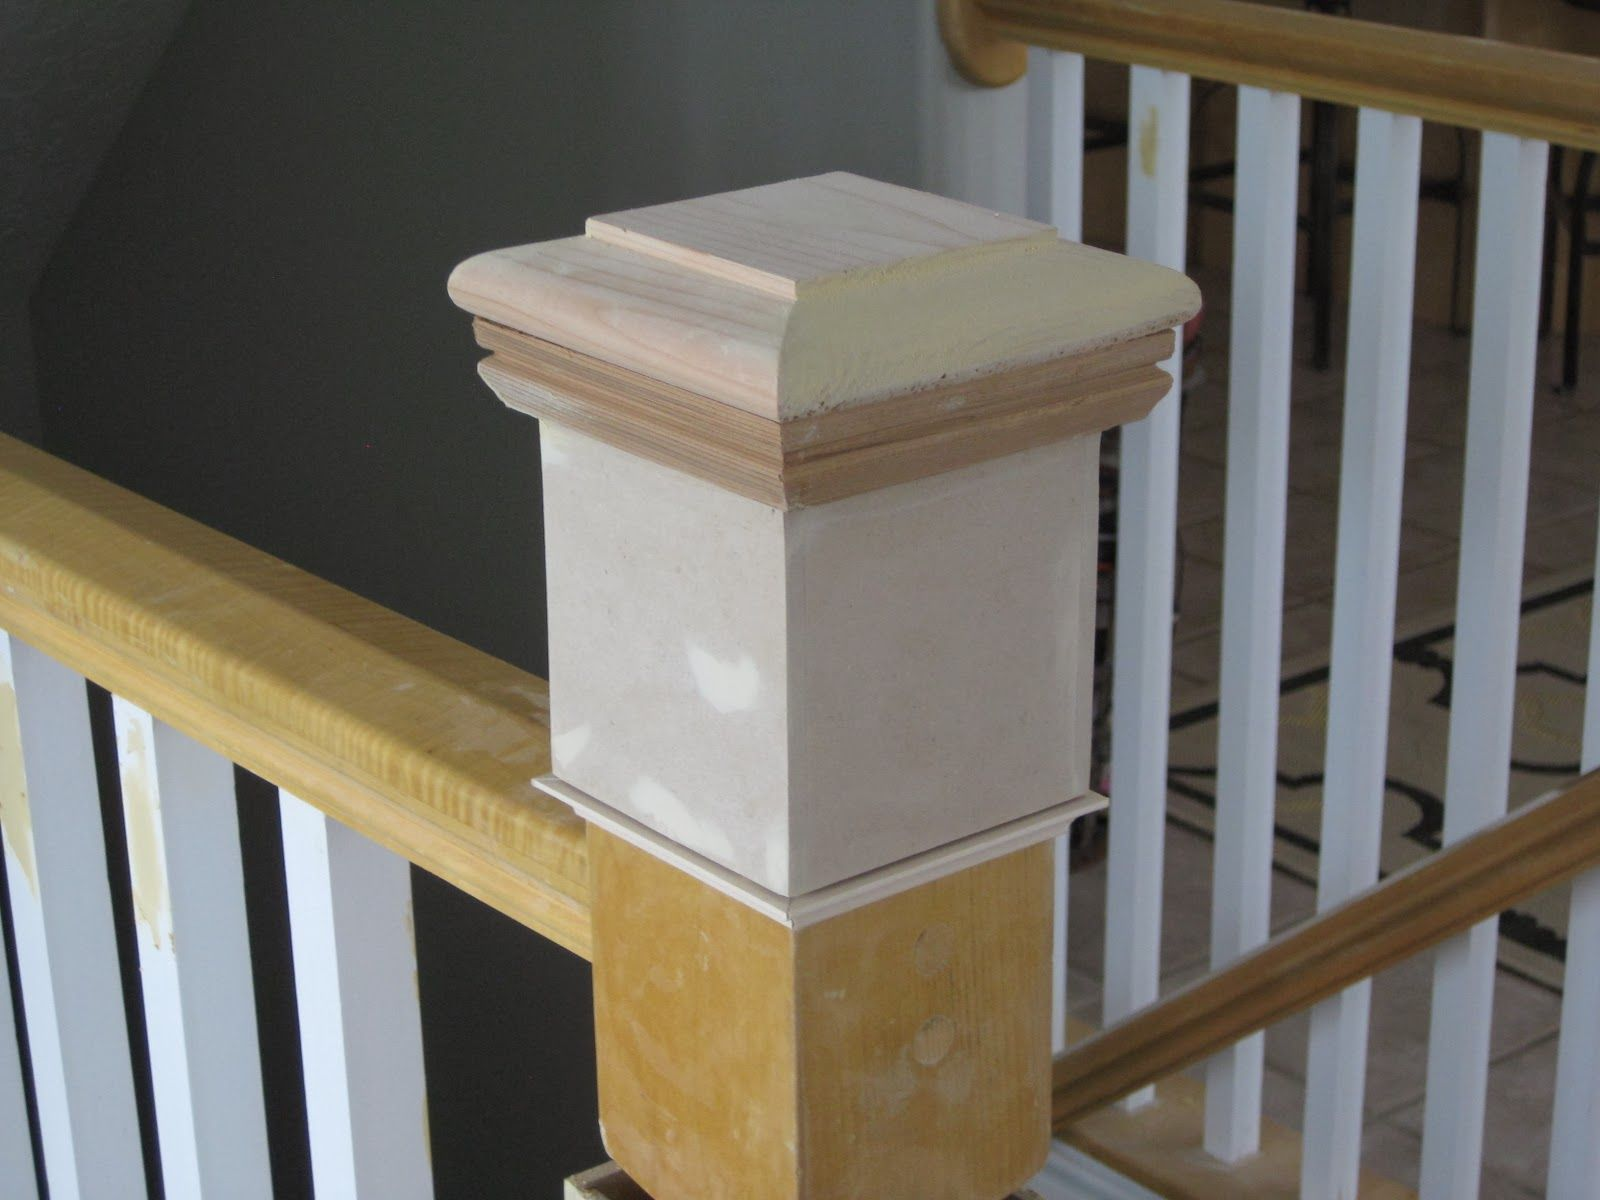 Newel Post Diy Tda Decorating And Design Featured On | Newel Post Cap Designs | White Oak | Decorative | Strong | Porch | Diy